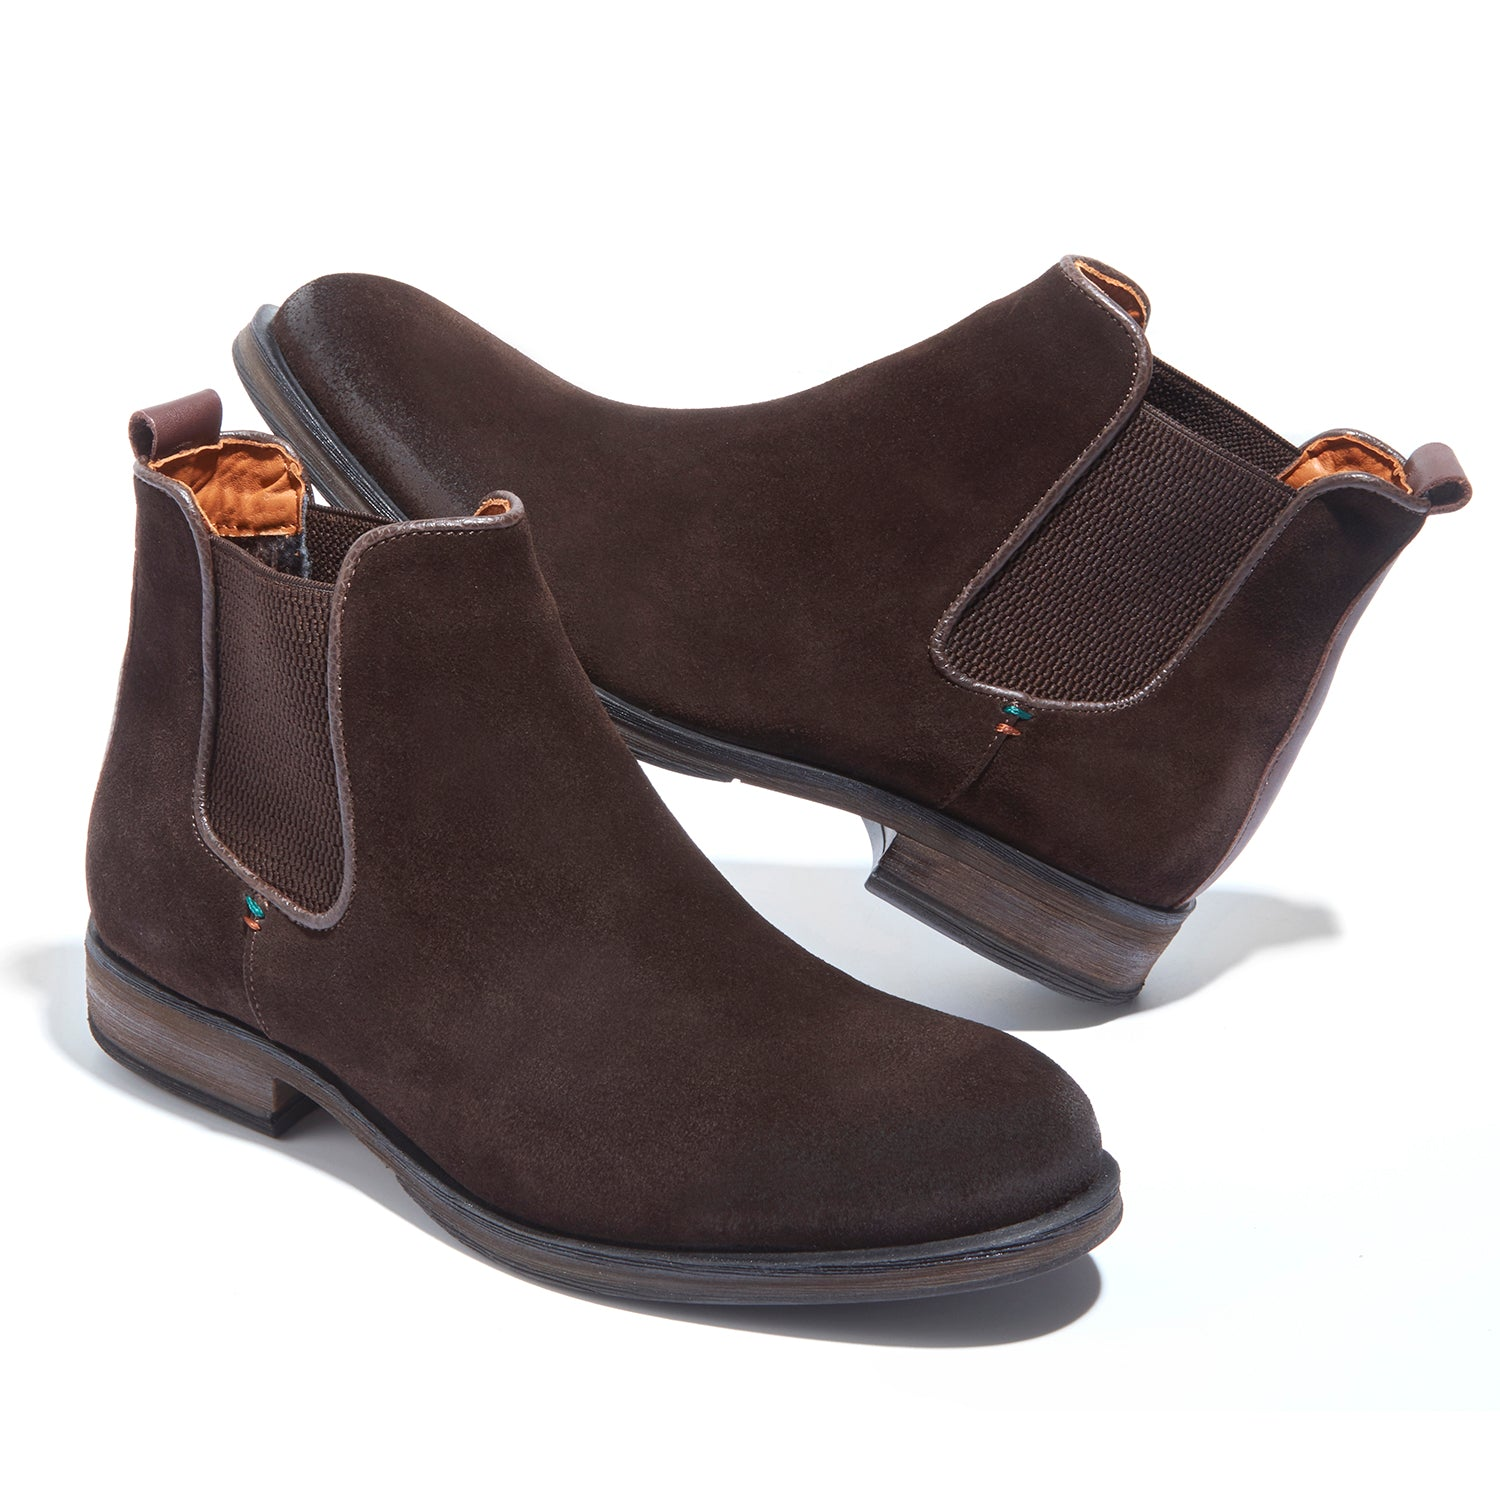 Chelsea boots from Jones Bootmaker